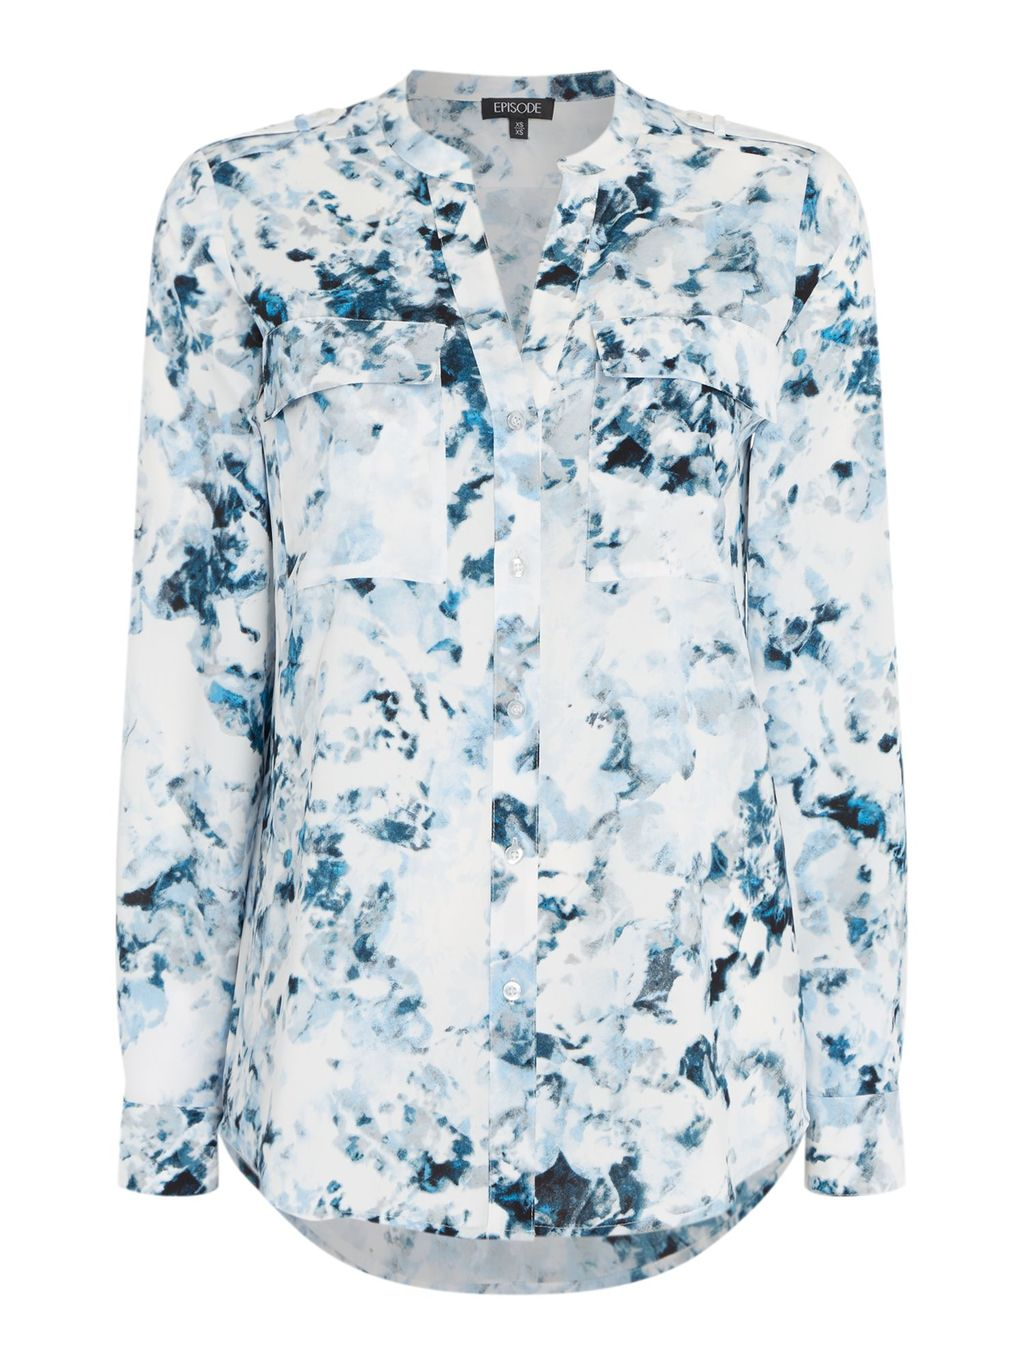 Floral Print V Neck Blouse, Black/White - style: blouse; predominant colour: white; secondary colour: navy; occasions: casual; length: standard; neckline: collarstand & mandarin with v-neck; fibres: polyester/polyamide - 100%; fit: body skimming; sleeve length: long sleeve; sleeve style: standard; pattern type: fabric; pattern: florals; texture group: woven light midweight; multicoloured: multicoloured; season: s/s 2016